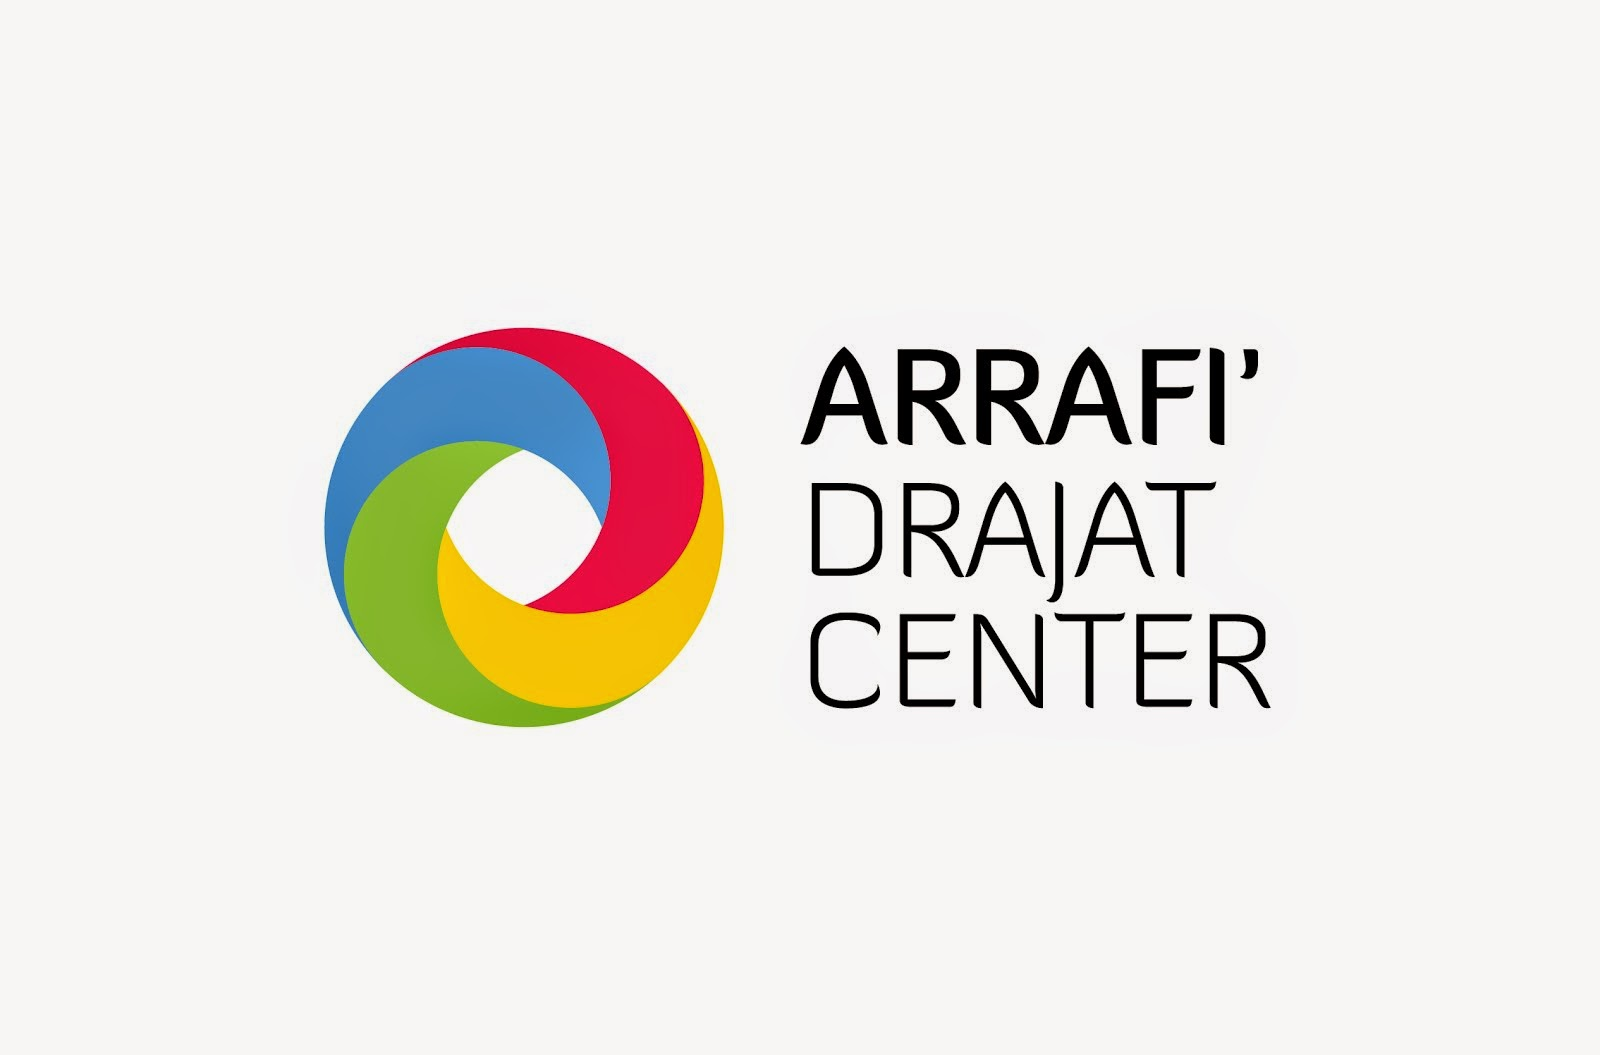 AR-RAFI' DRAJAT CENTER